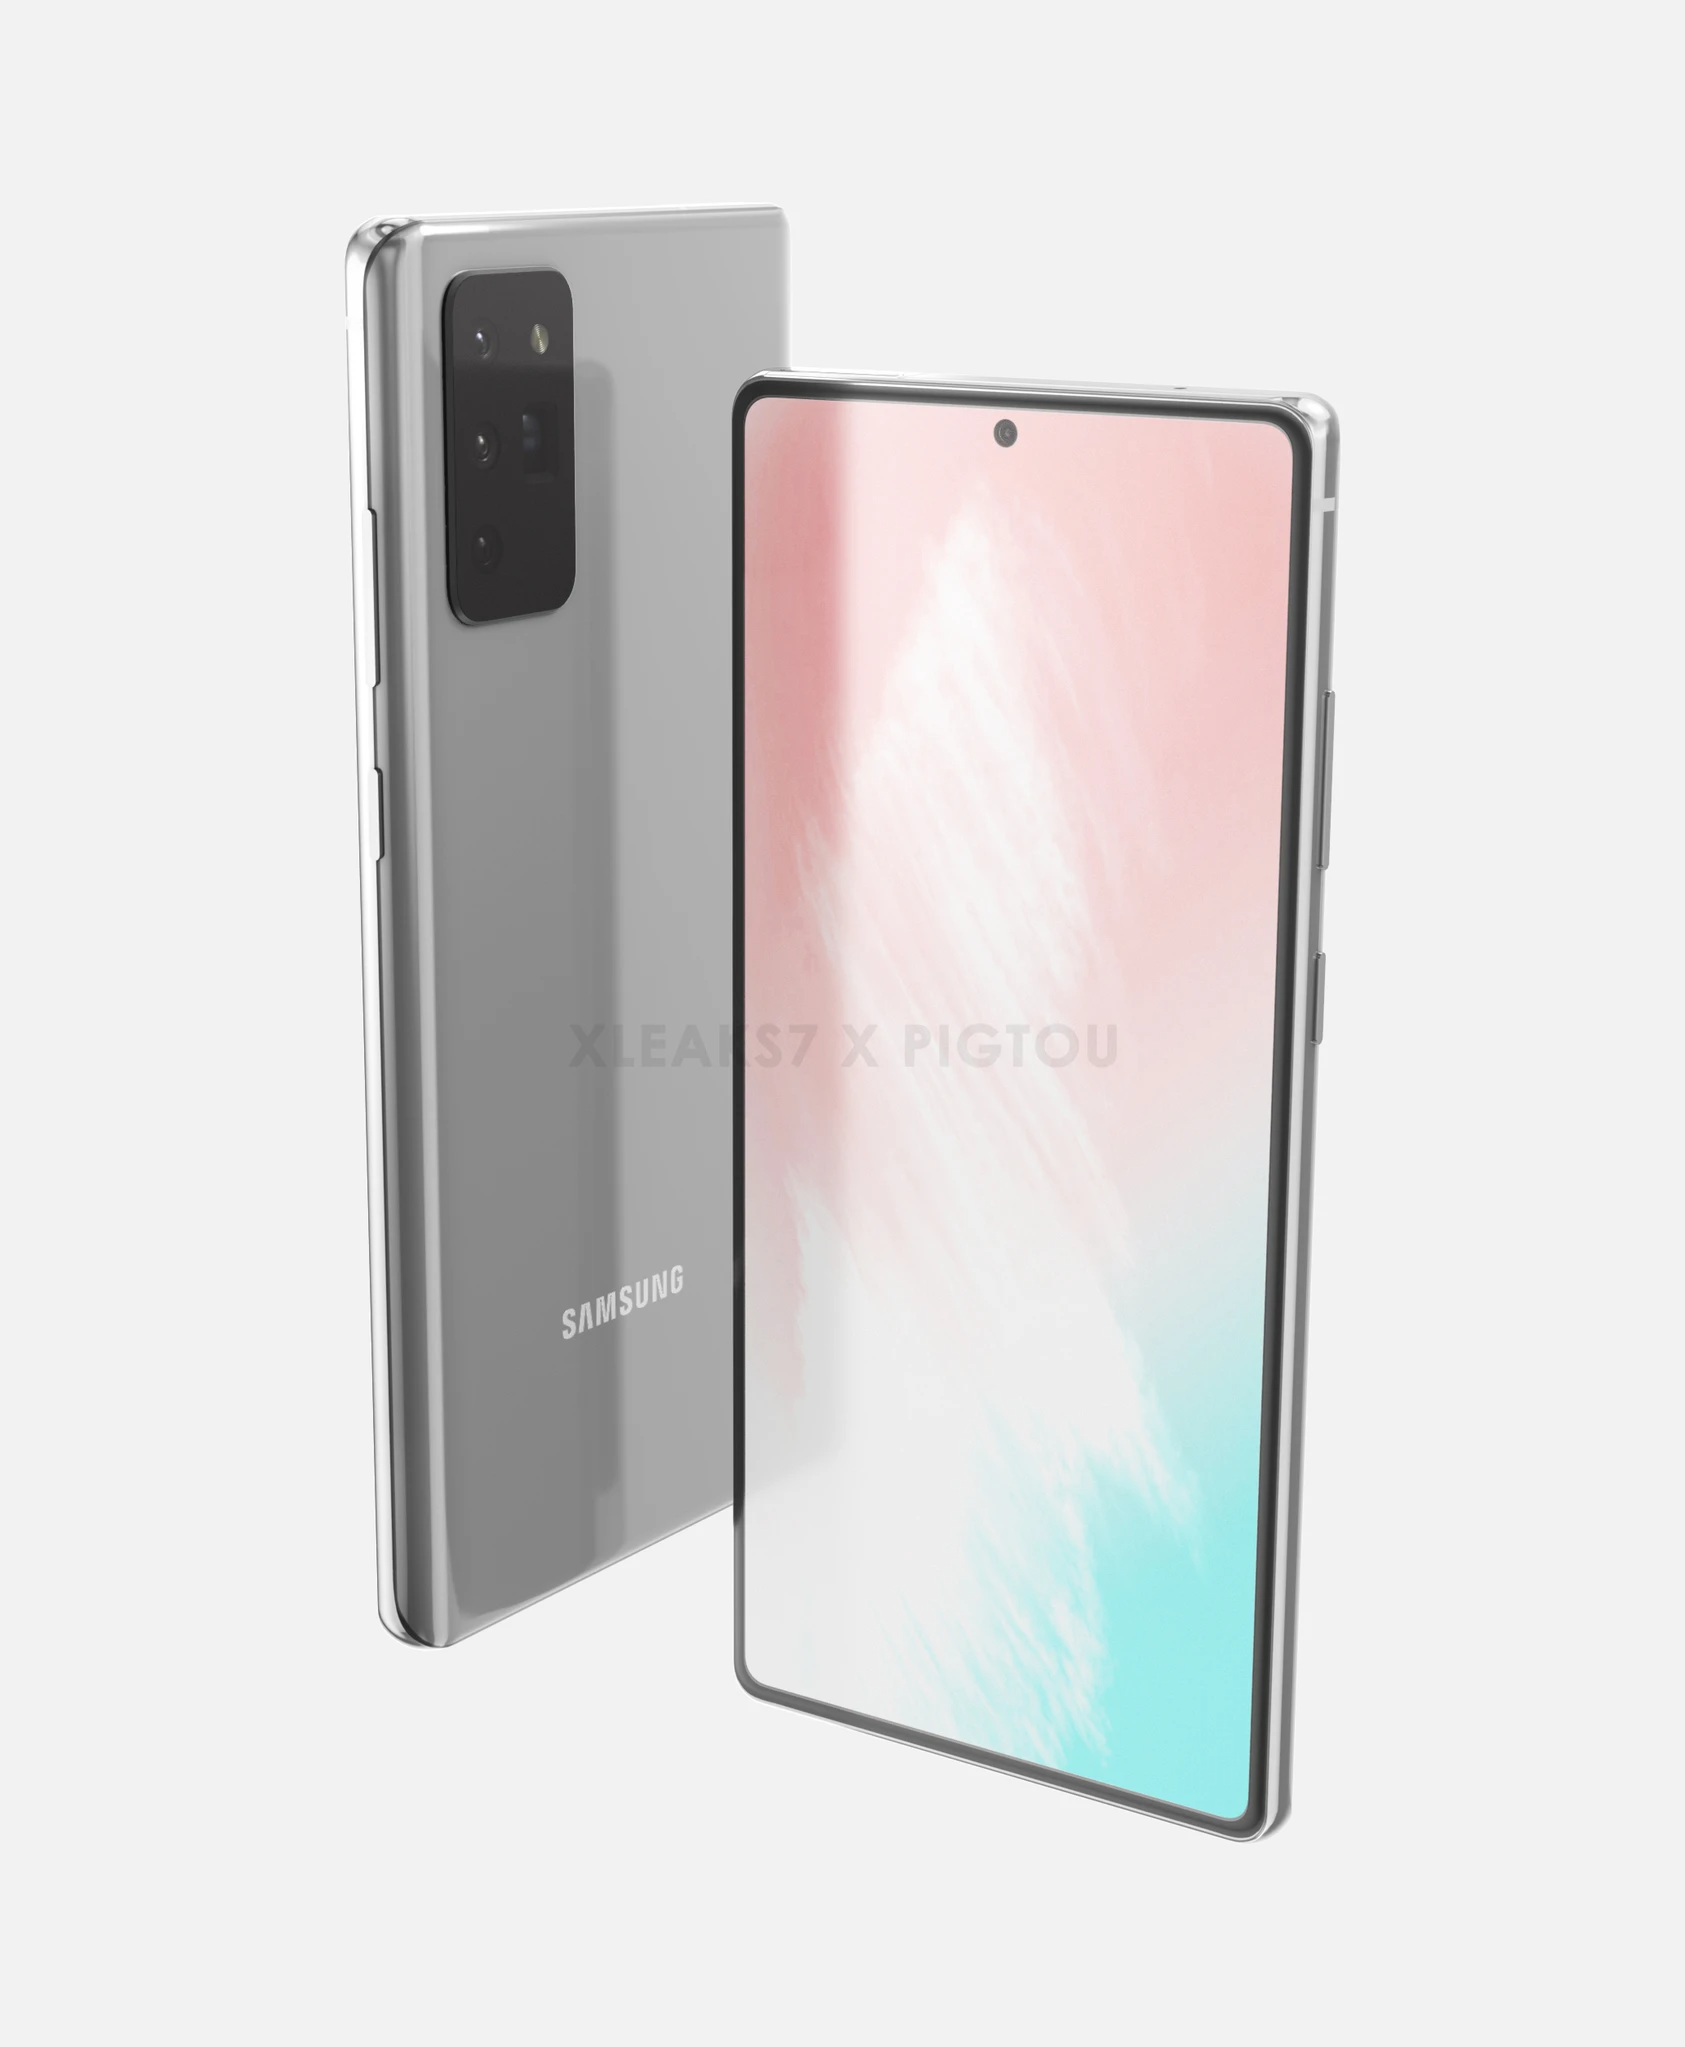 Samsung Galaxy Note 20 Series to be Launched in August 2020 in Online Event